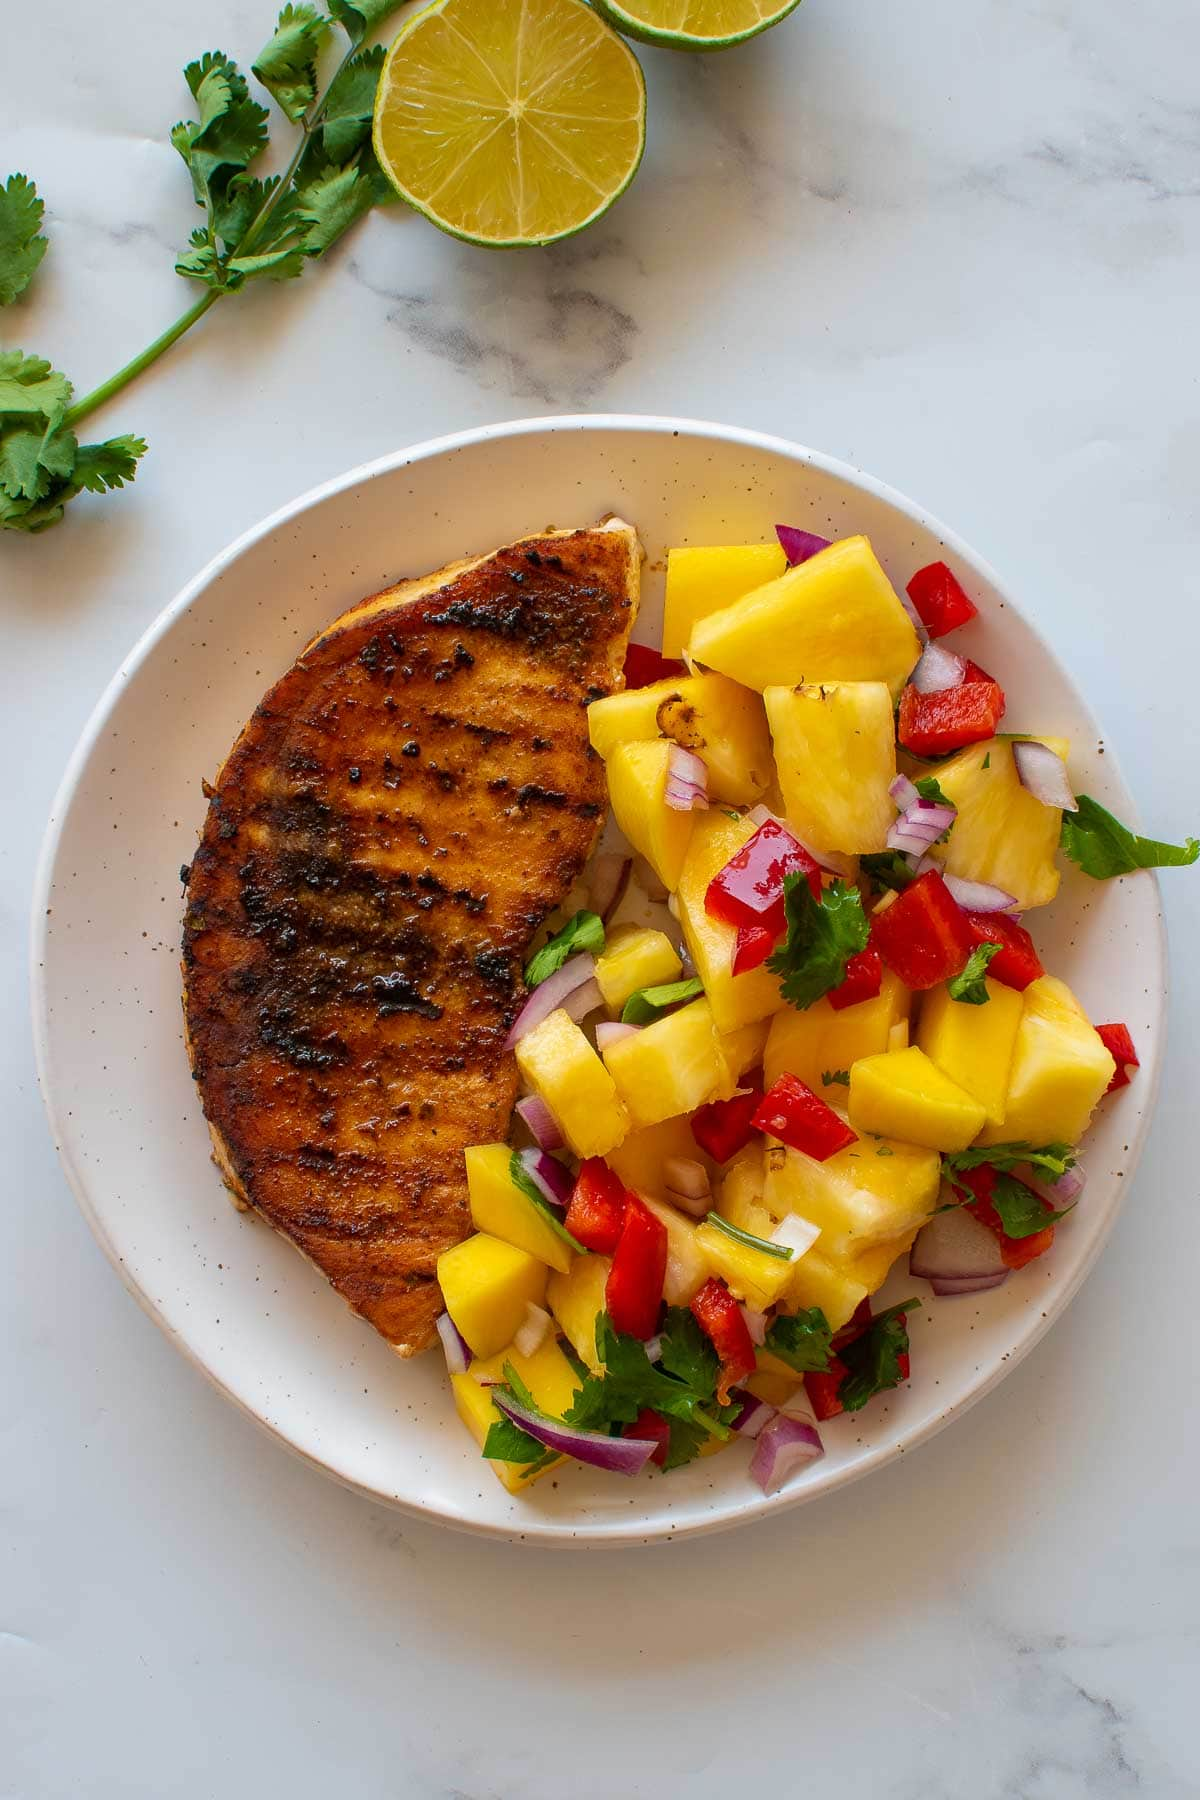 Blackened swordfish and pineapple salad on a plate.